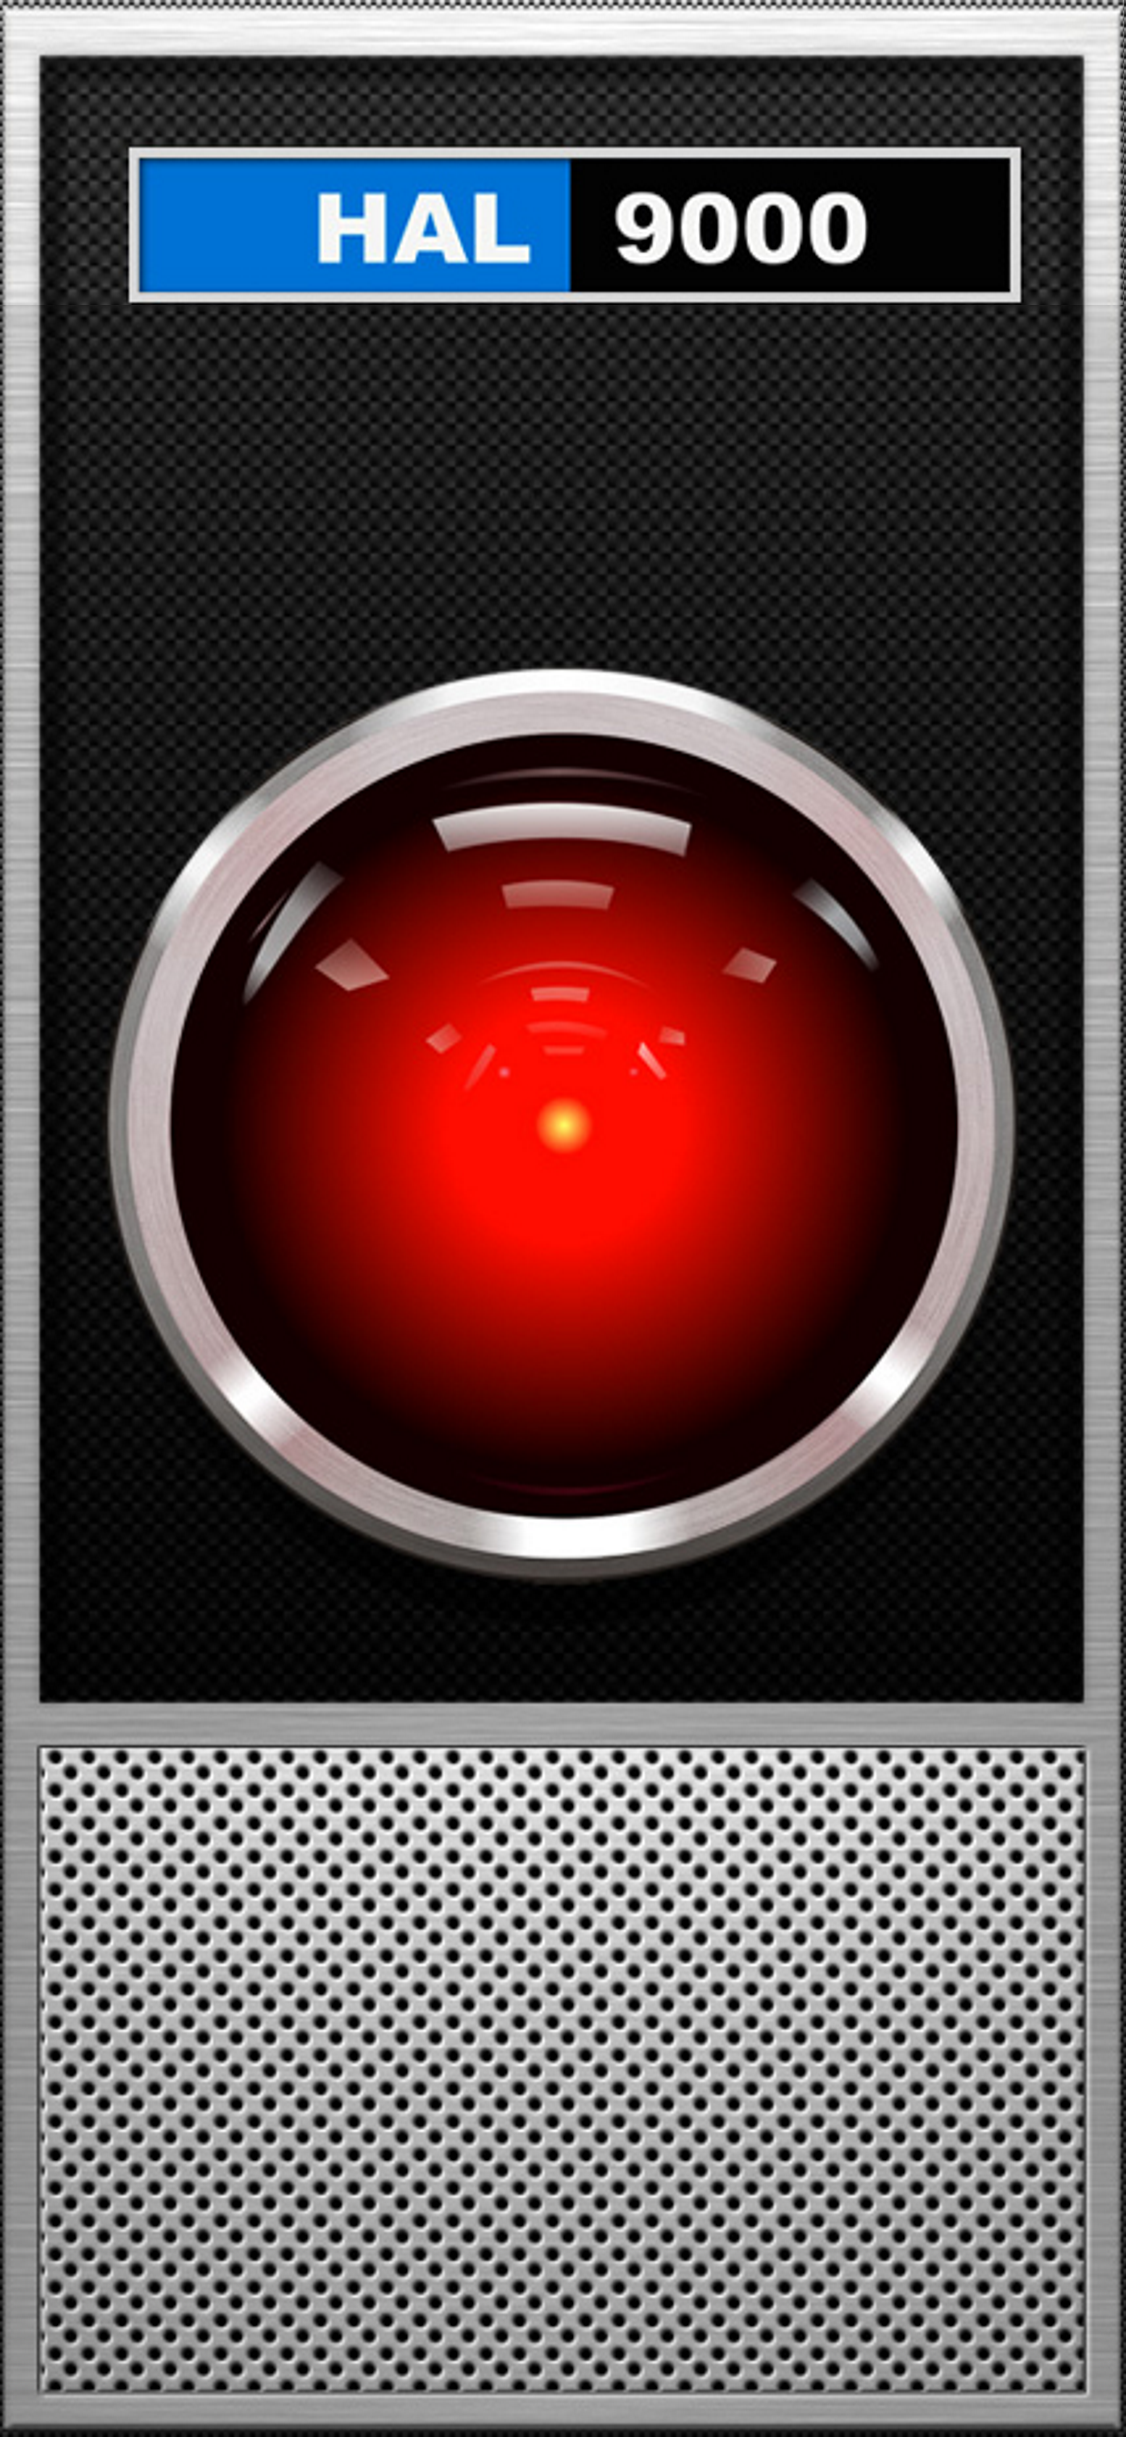 2001 Hal9000 Interface Wallpaper For Iphone X Static Cool Wallpapers For Phones Iphone Wallpaper Wallpaper